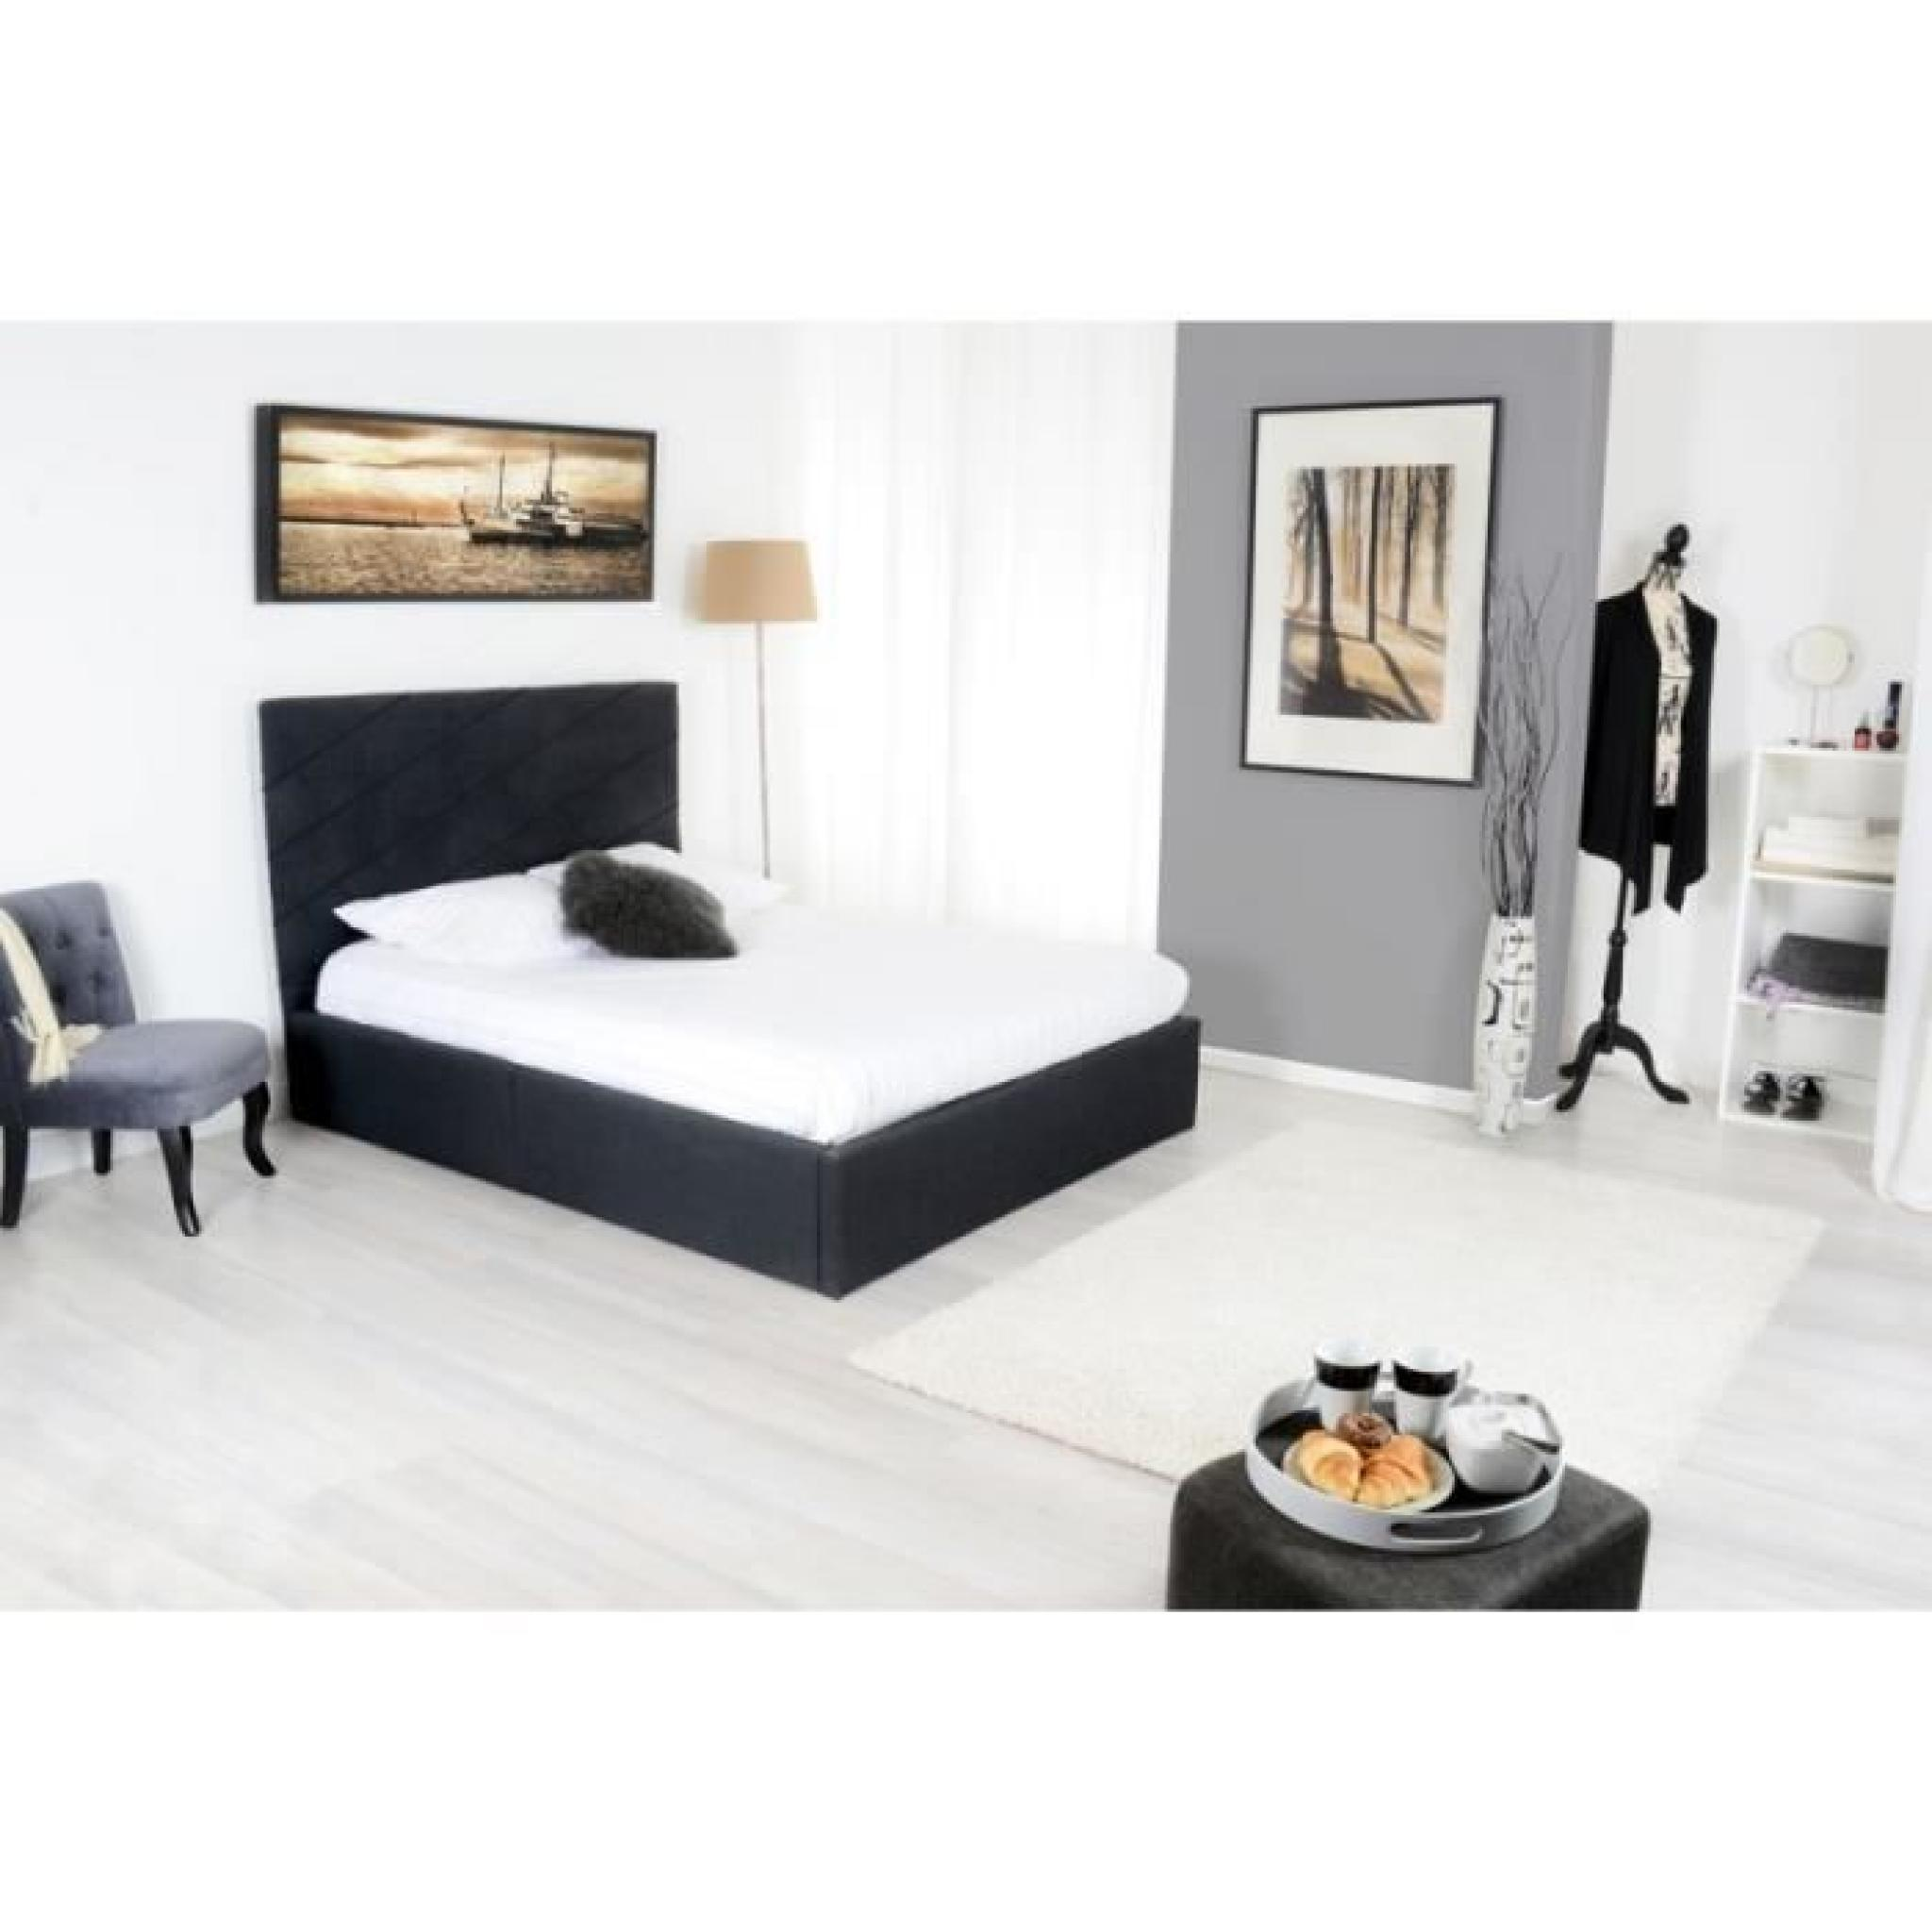 diag lit coffre adulte 160x200 cm sommier gris achat vente lit pas cher. Black Bedroom Furniture Sets. Home Design Ideas